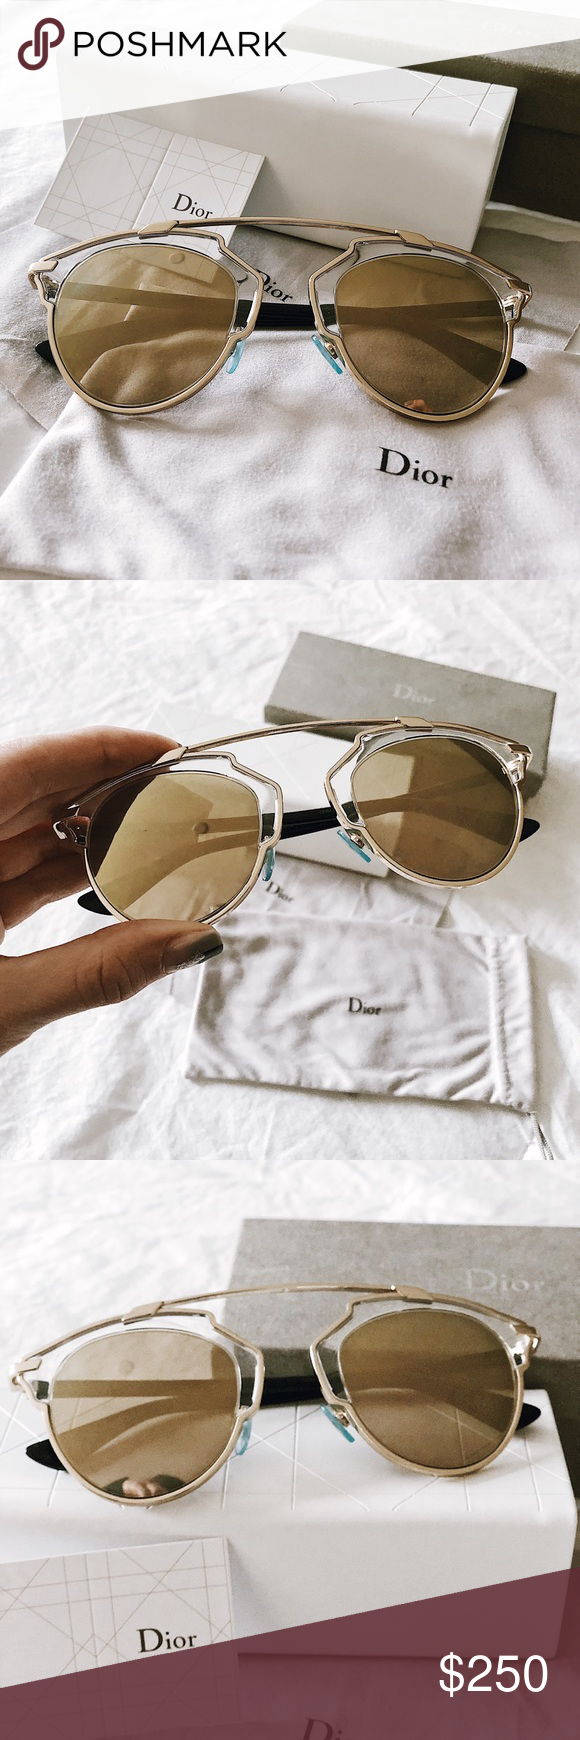 6662cdee49b5 Authentic Dior So Real Sunglasses Used AUTHENTIC Dior So Real sunglasses in  GREAT condition. Comes with box, box case, fabric case, lens wipe, Dior  card.